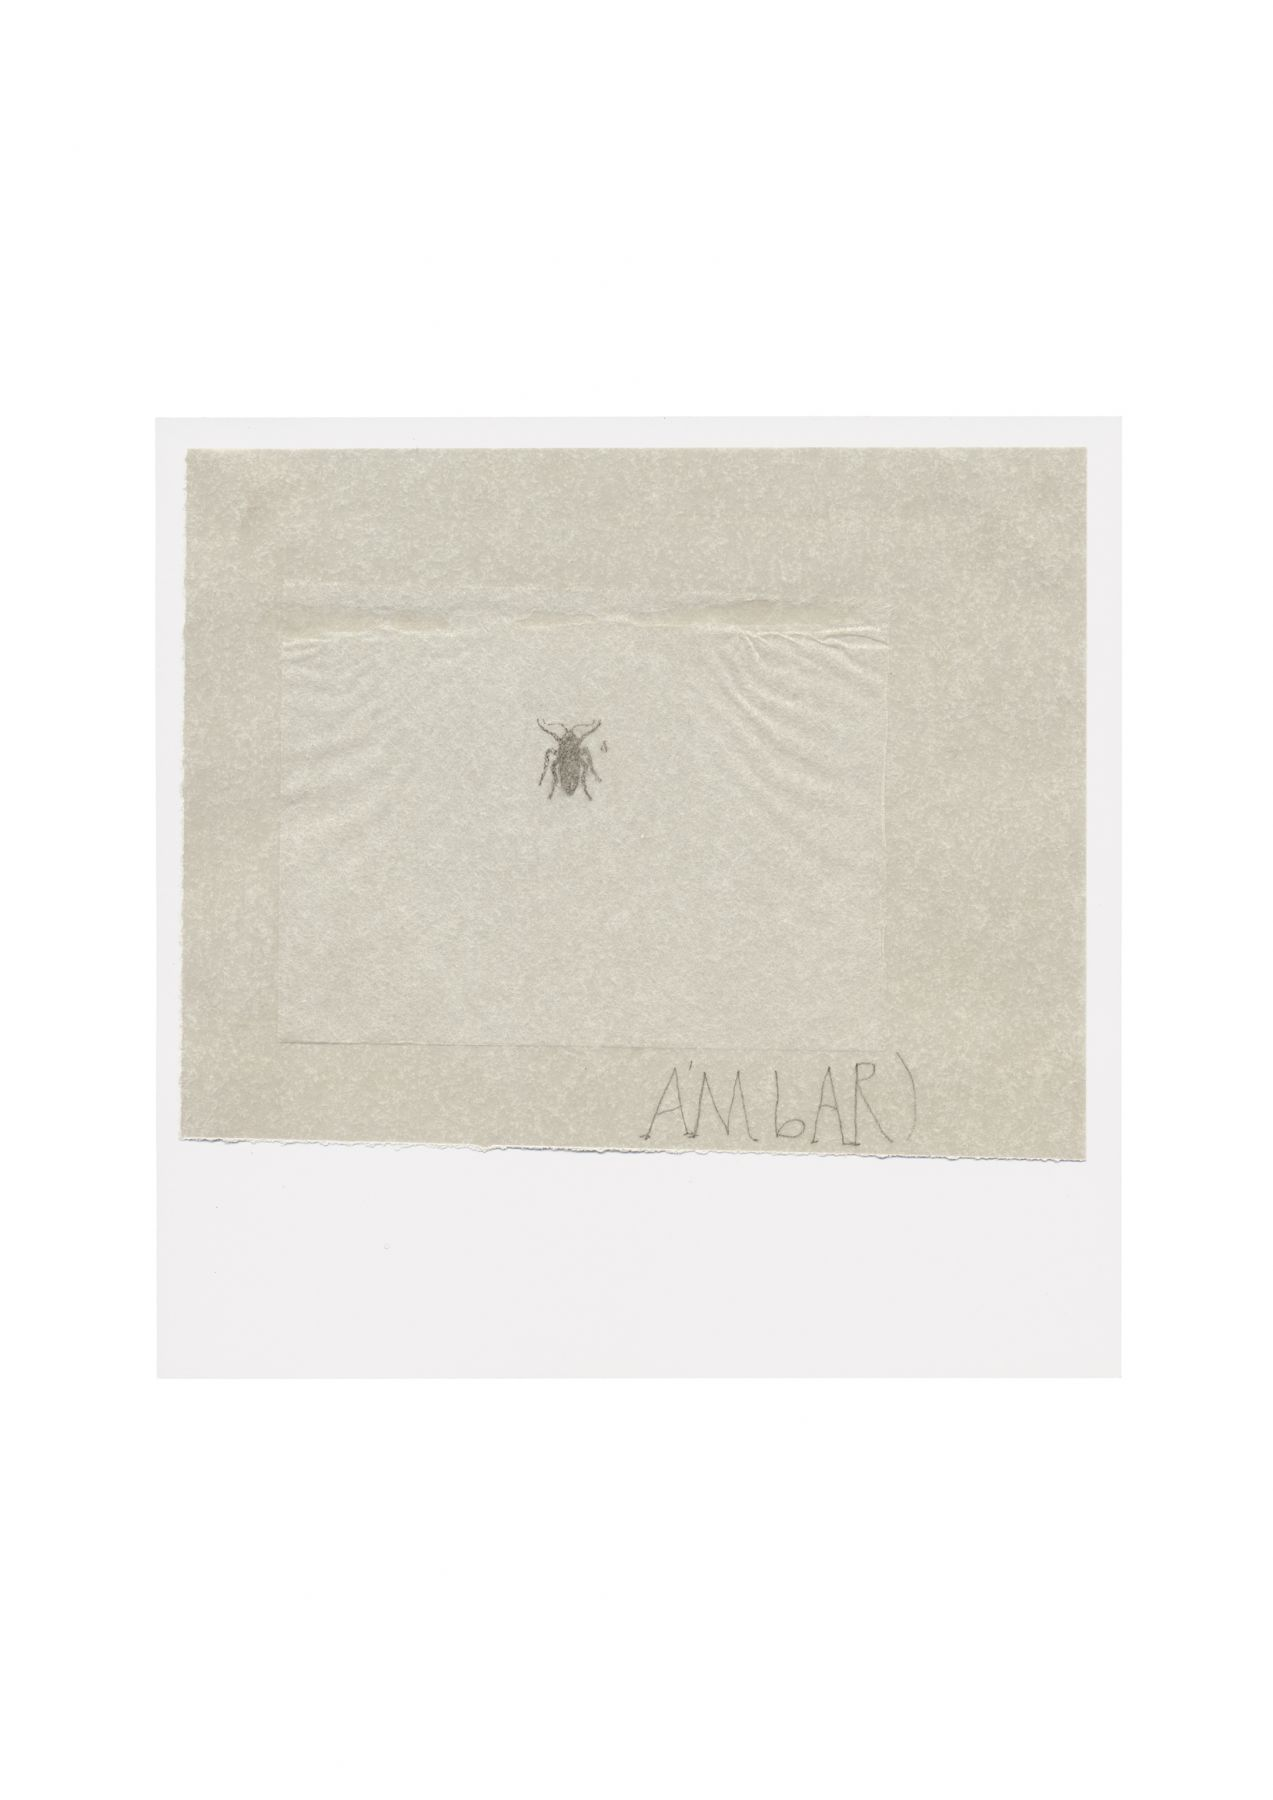 Ambar, 2002–03 Transparent paper, transfer on rice  paper and pencil on cardboard